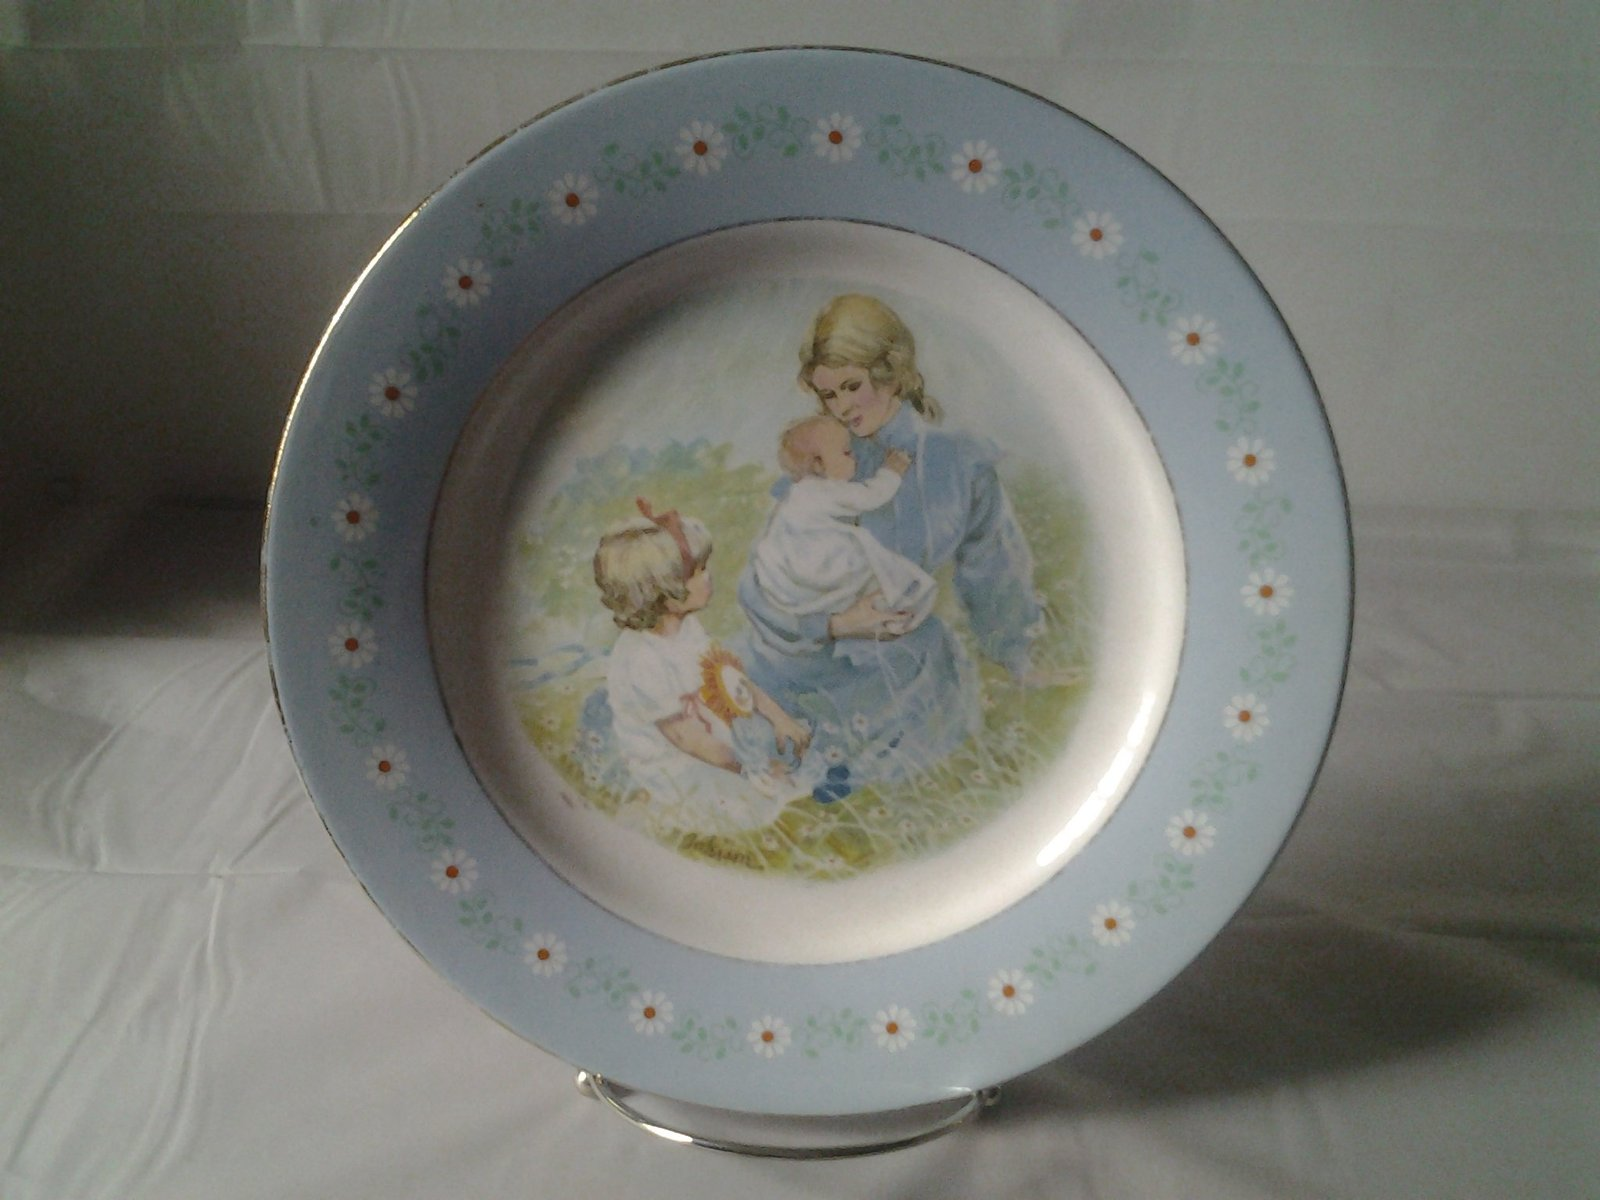 1974 Avon tenderness  collectors plate